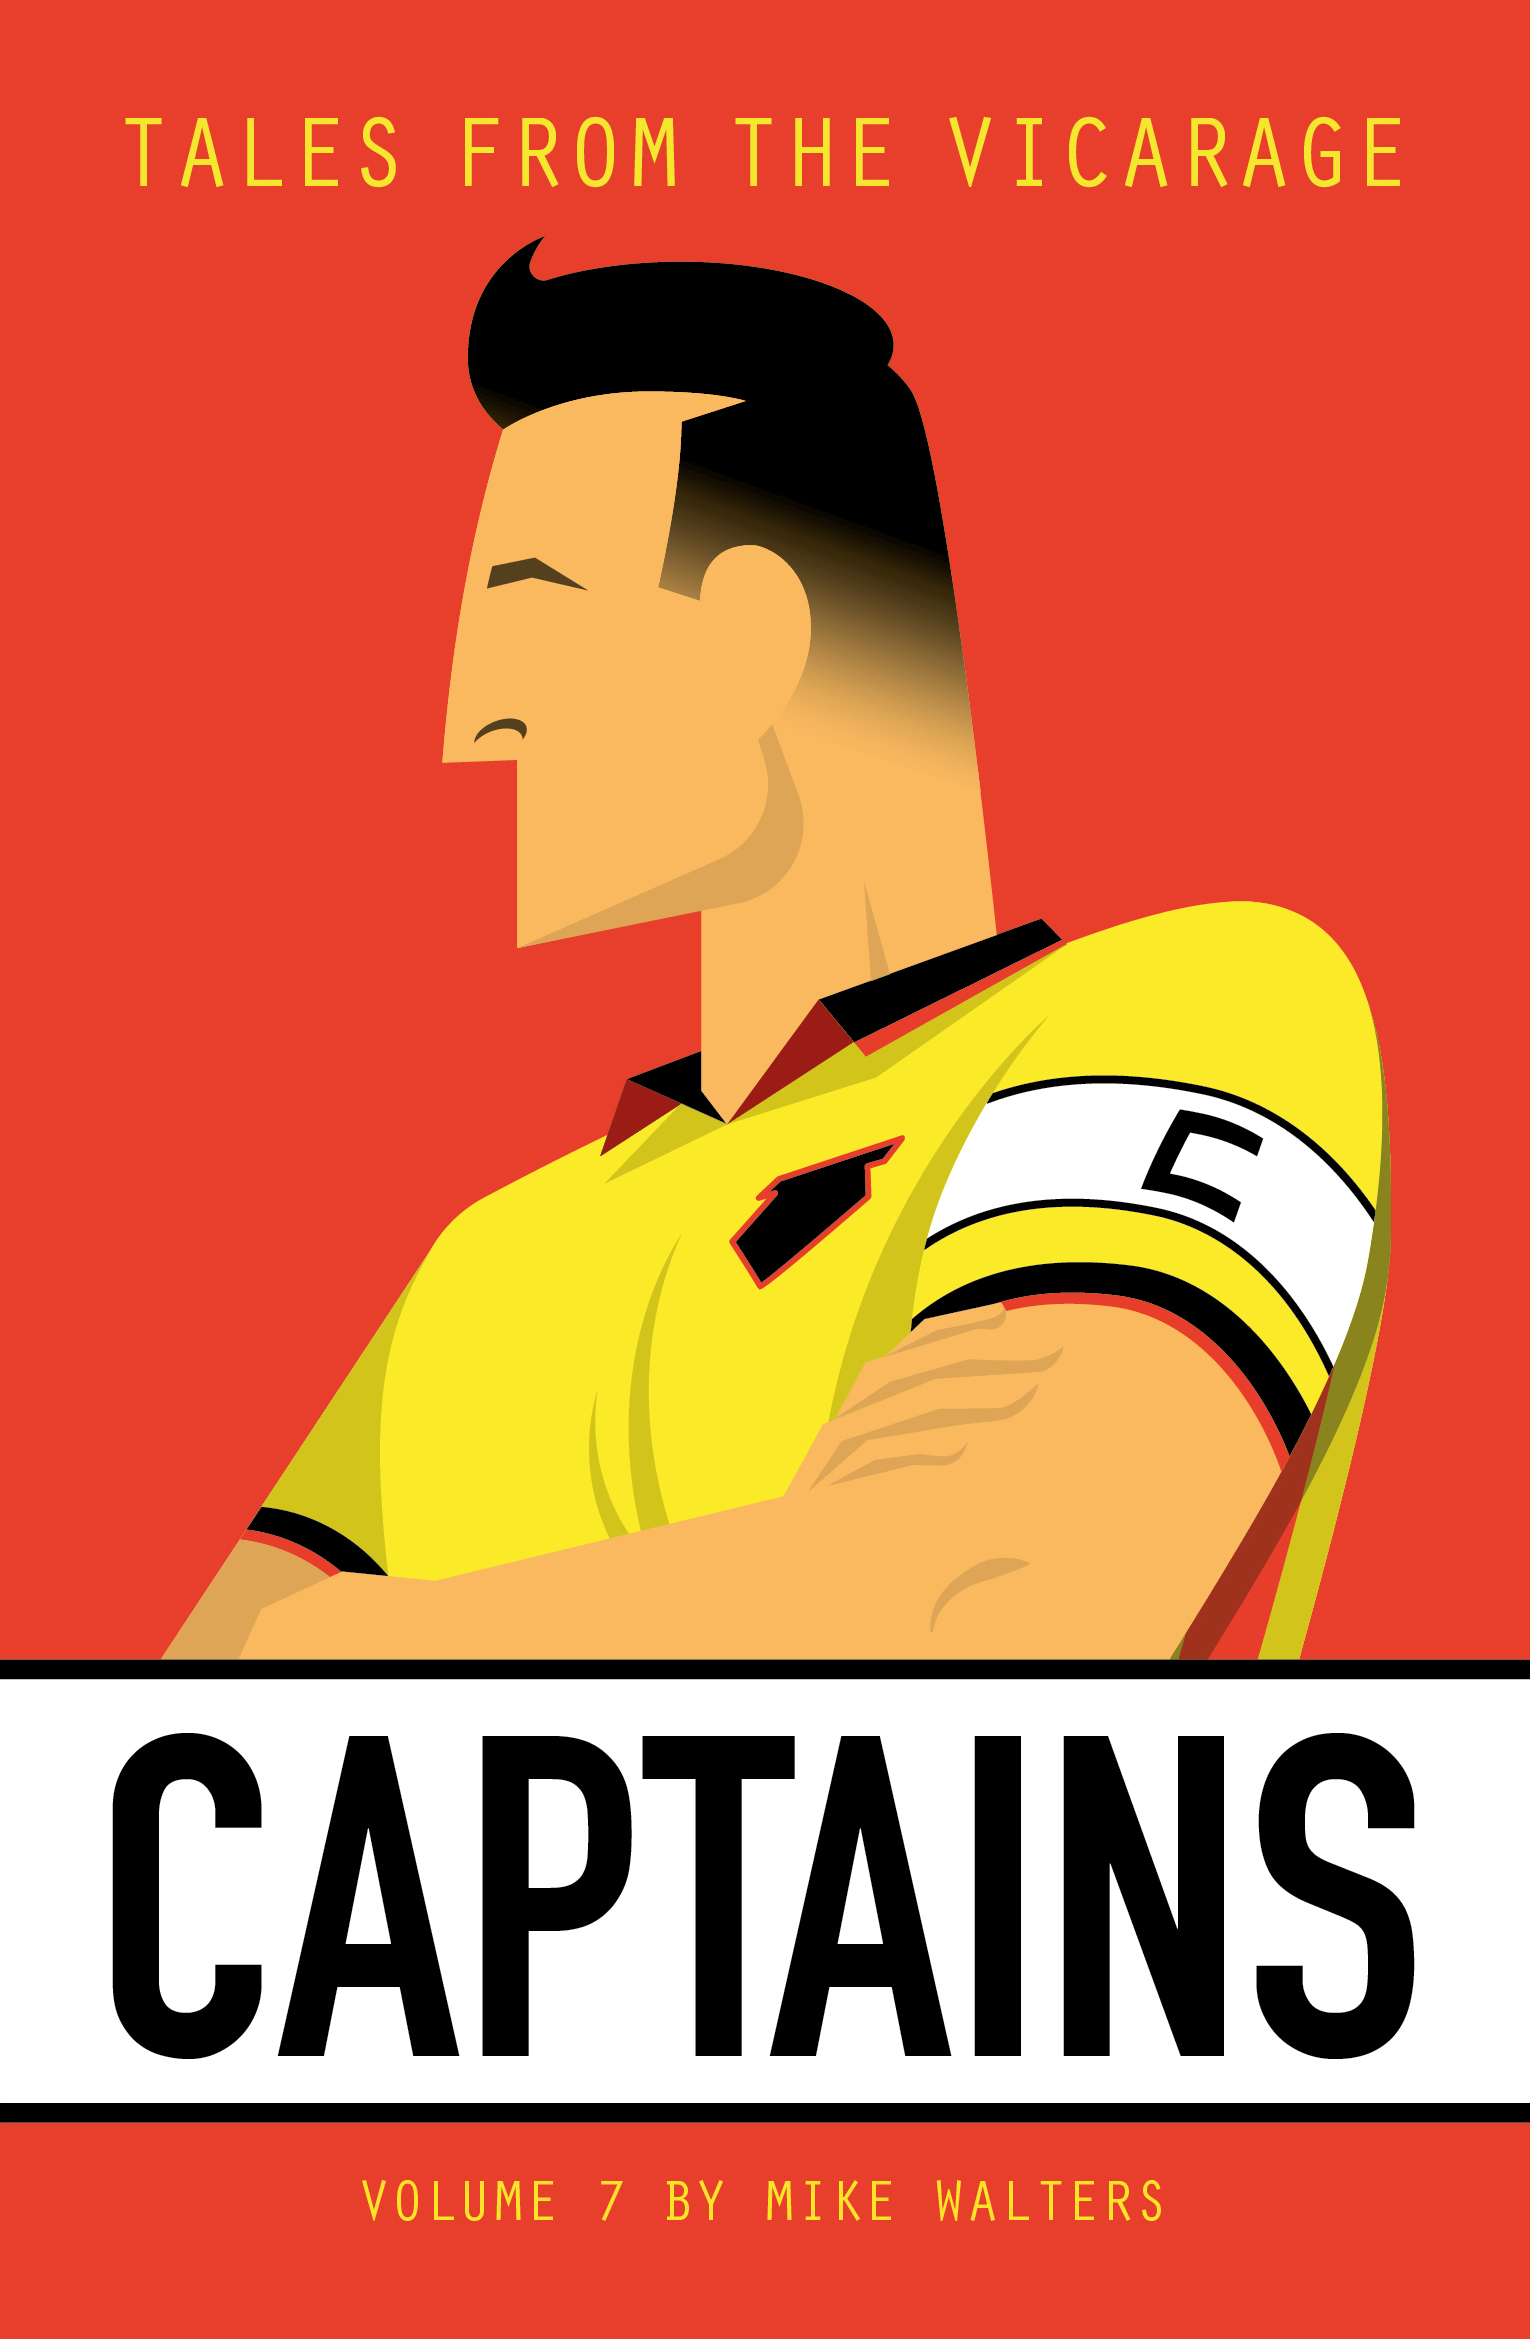 The making of our Captain – TFTV 7 front cover story